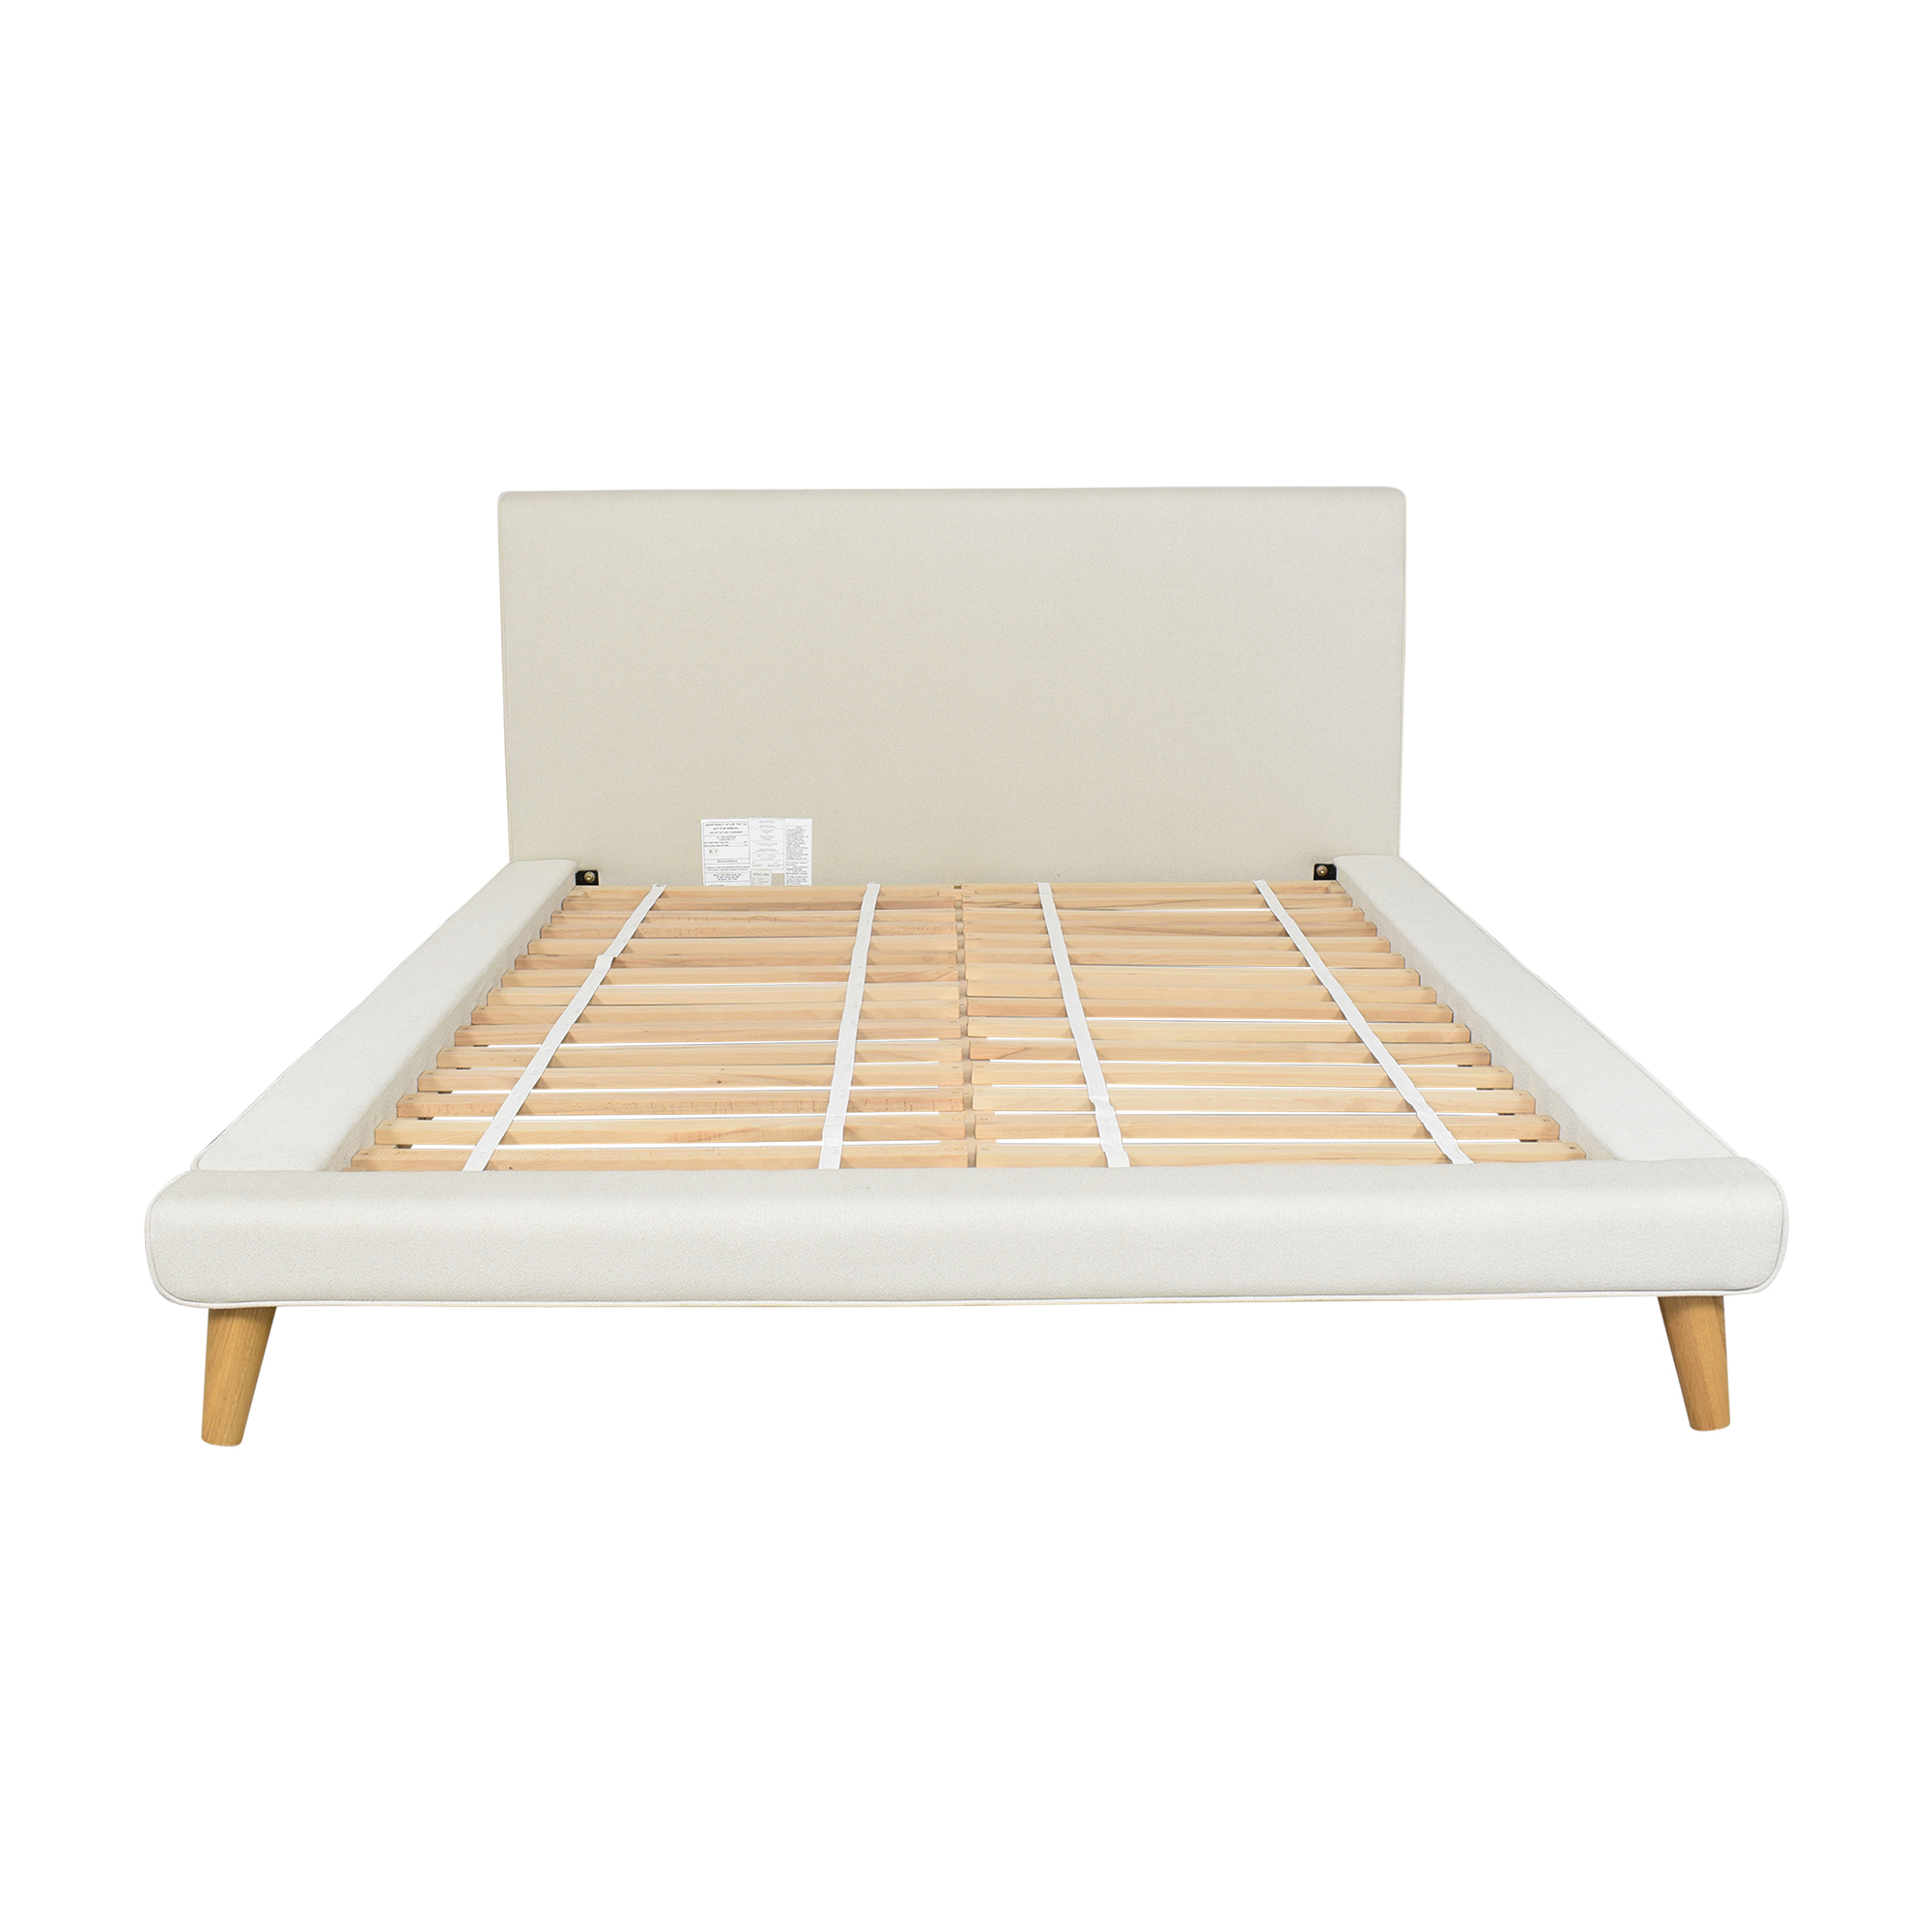 West Elm West Elm Mod Upholstered Queen Platform Bed beige